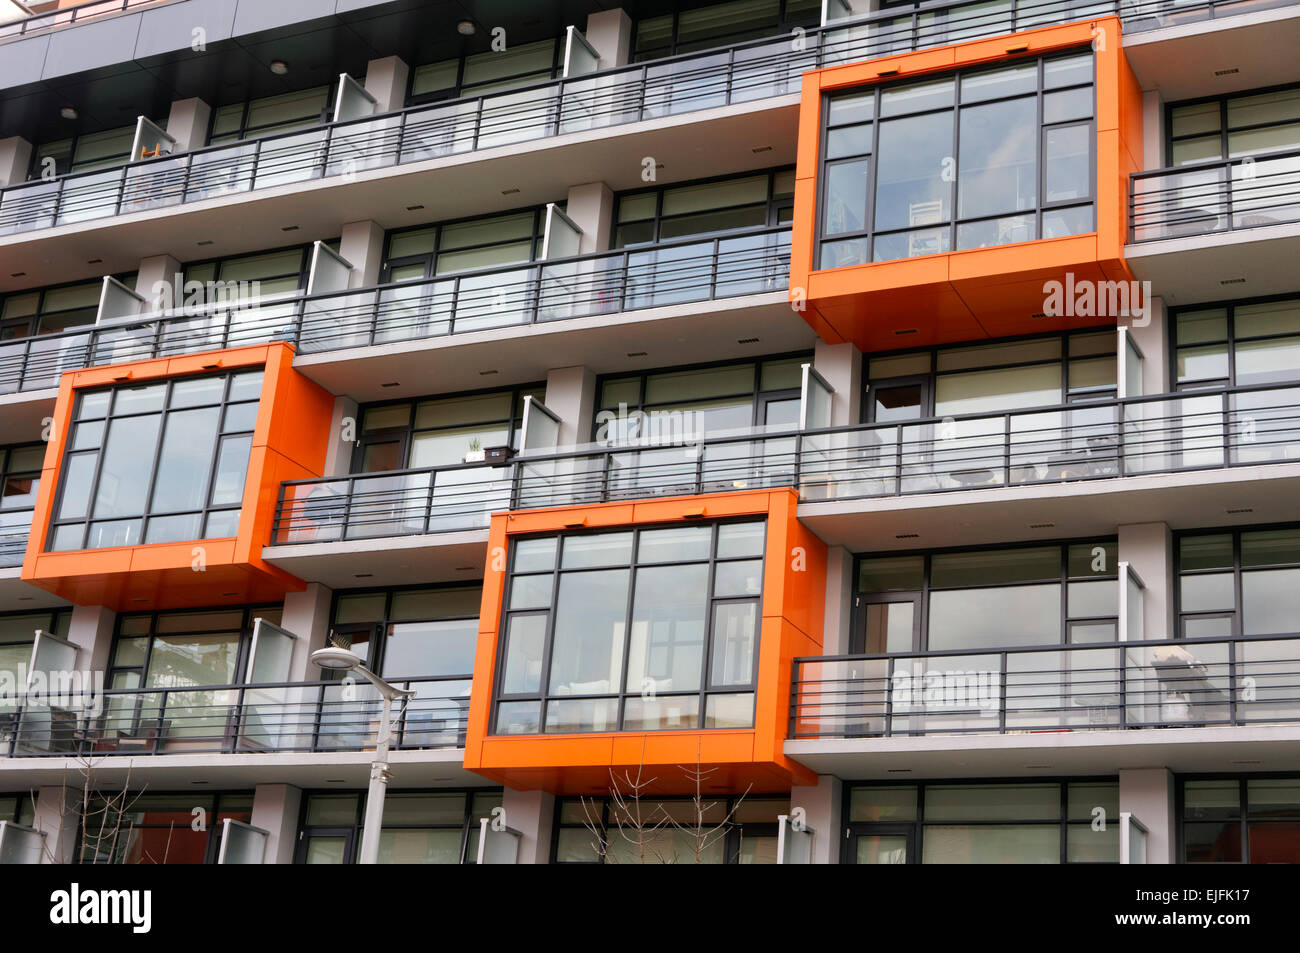 Architectural detail of a modern condominium building in False Creek Village, Vancoover, BC, Canada - Stock Image